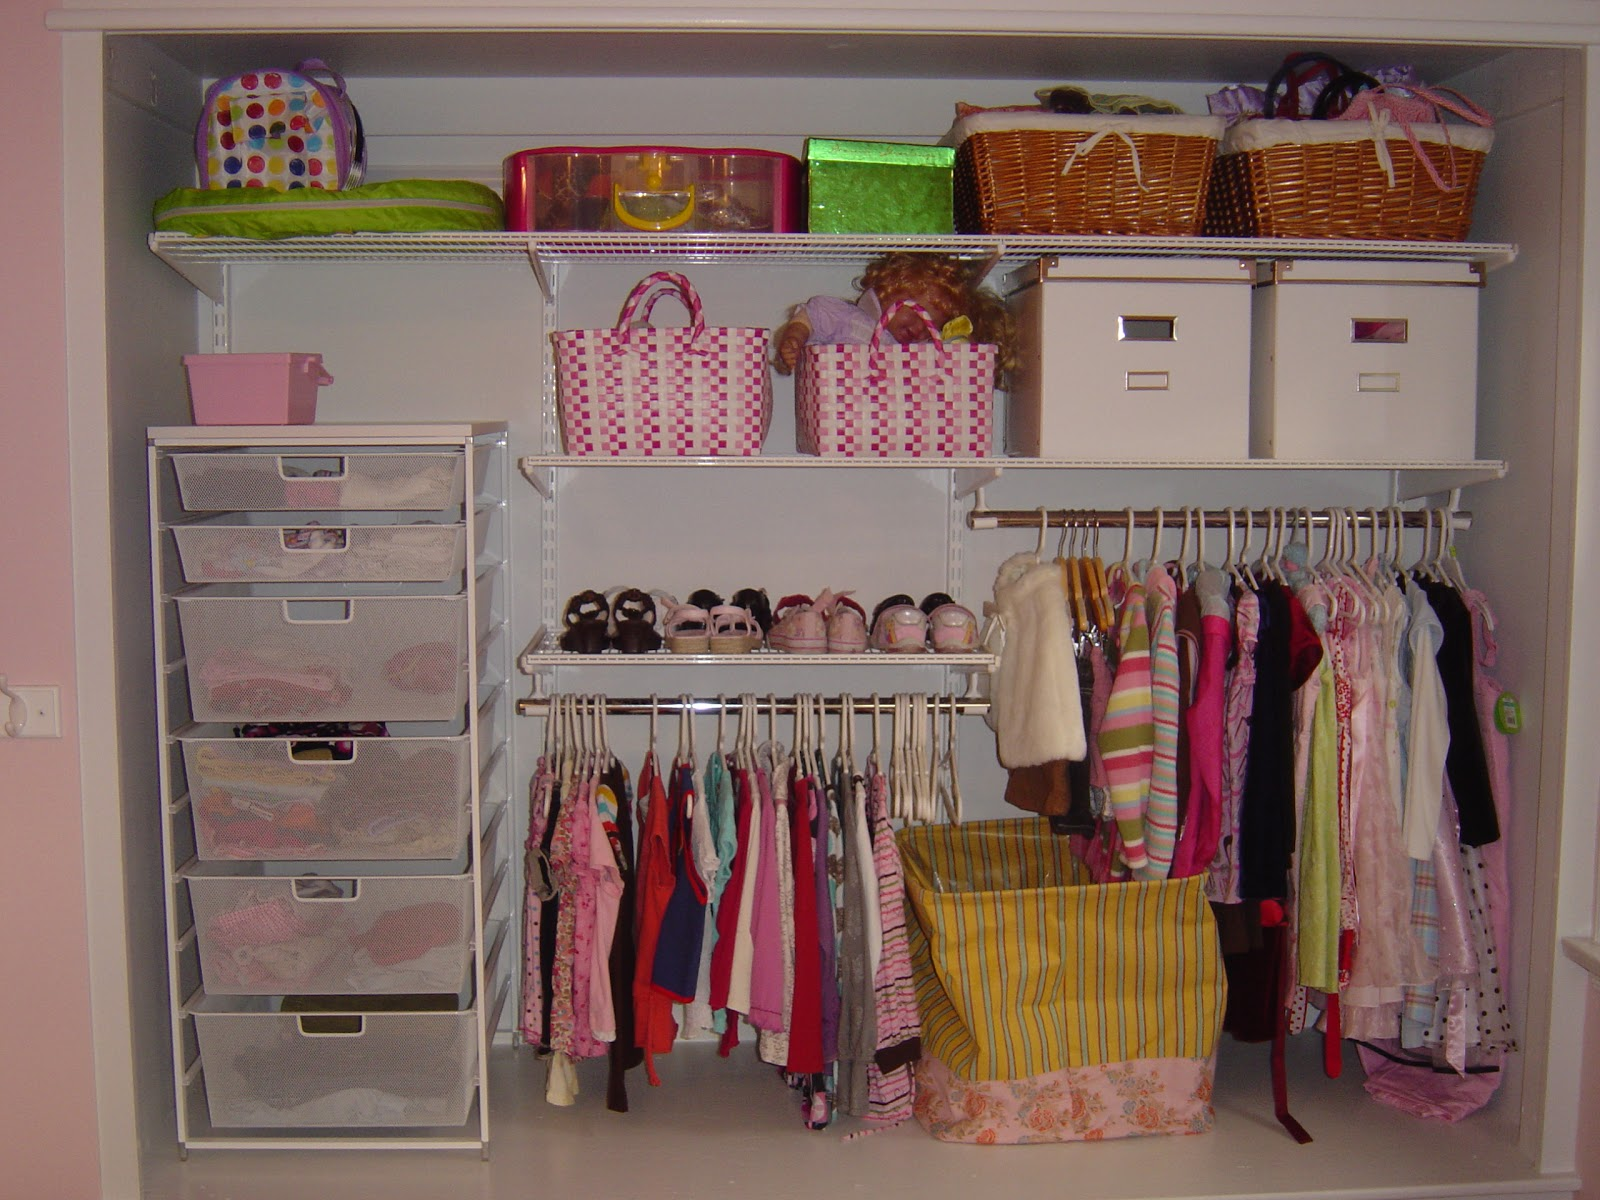 Kids 39 Room Project Organizing Made Fun Kids 39 Room Project: pictures of closet organizers